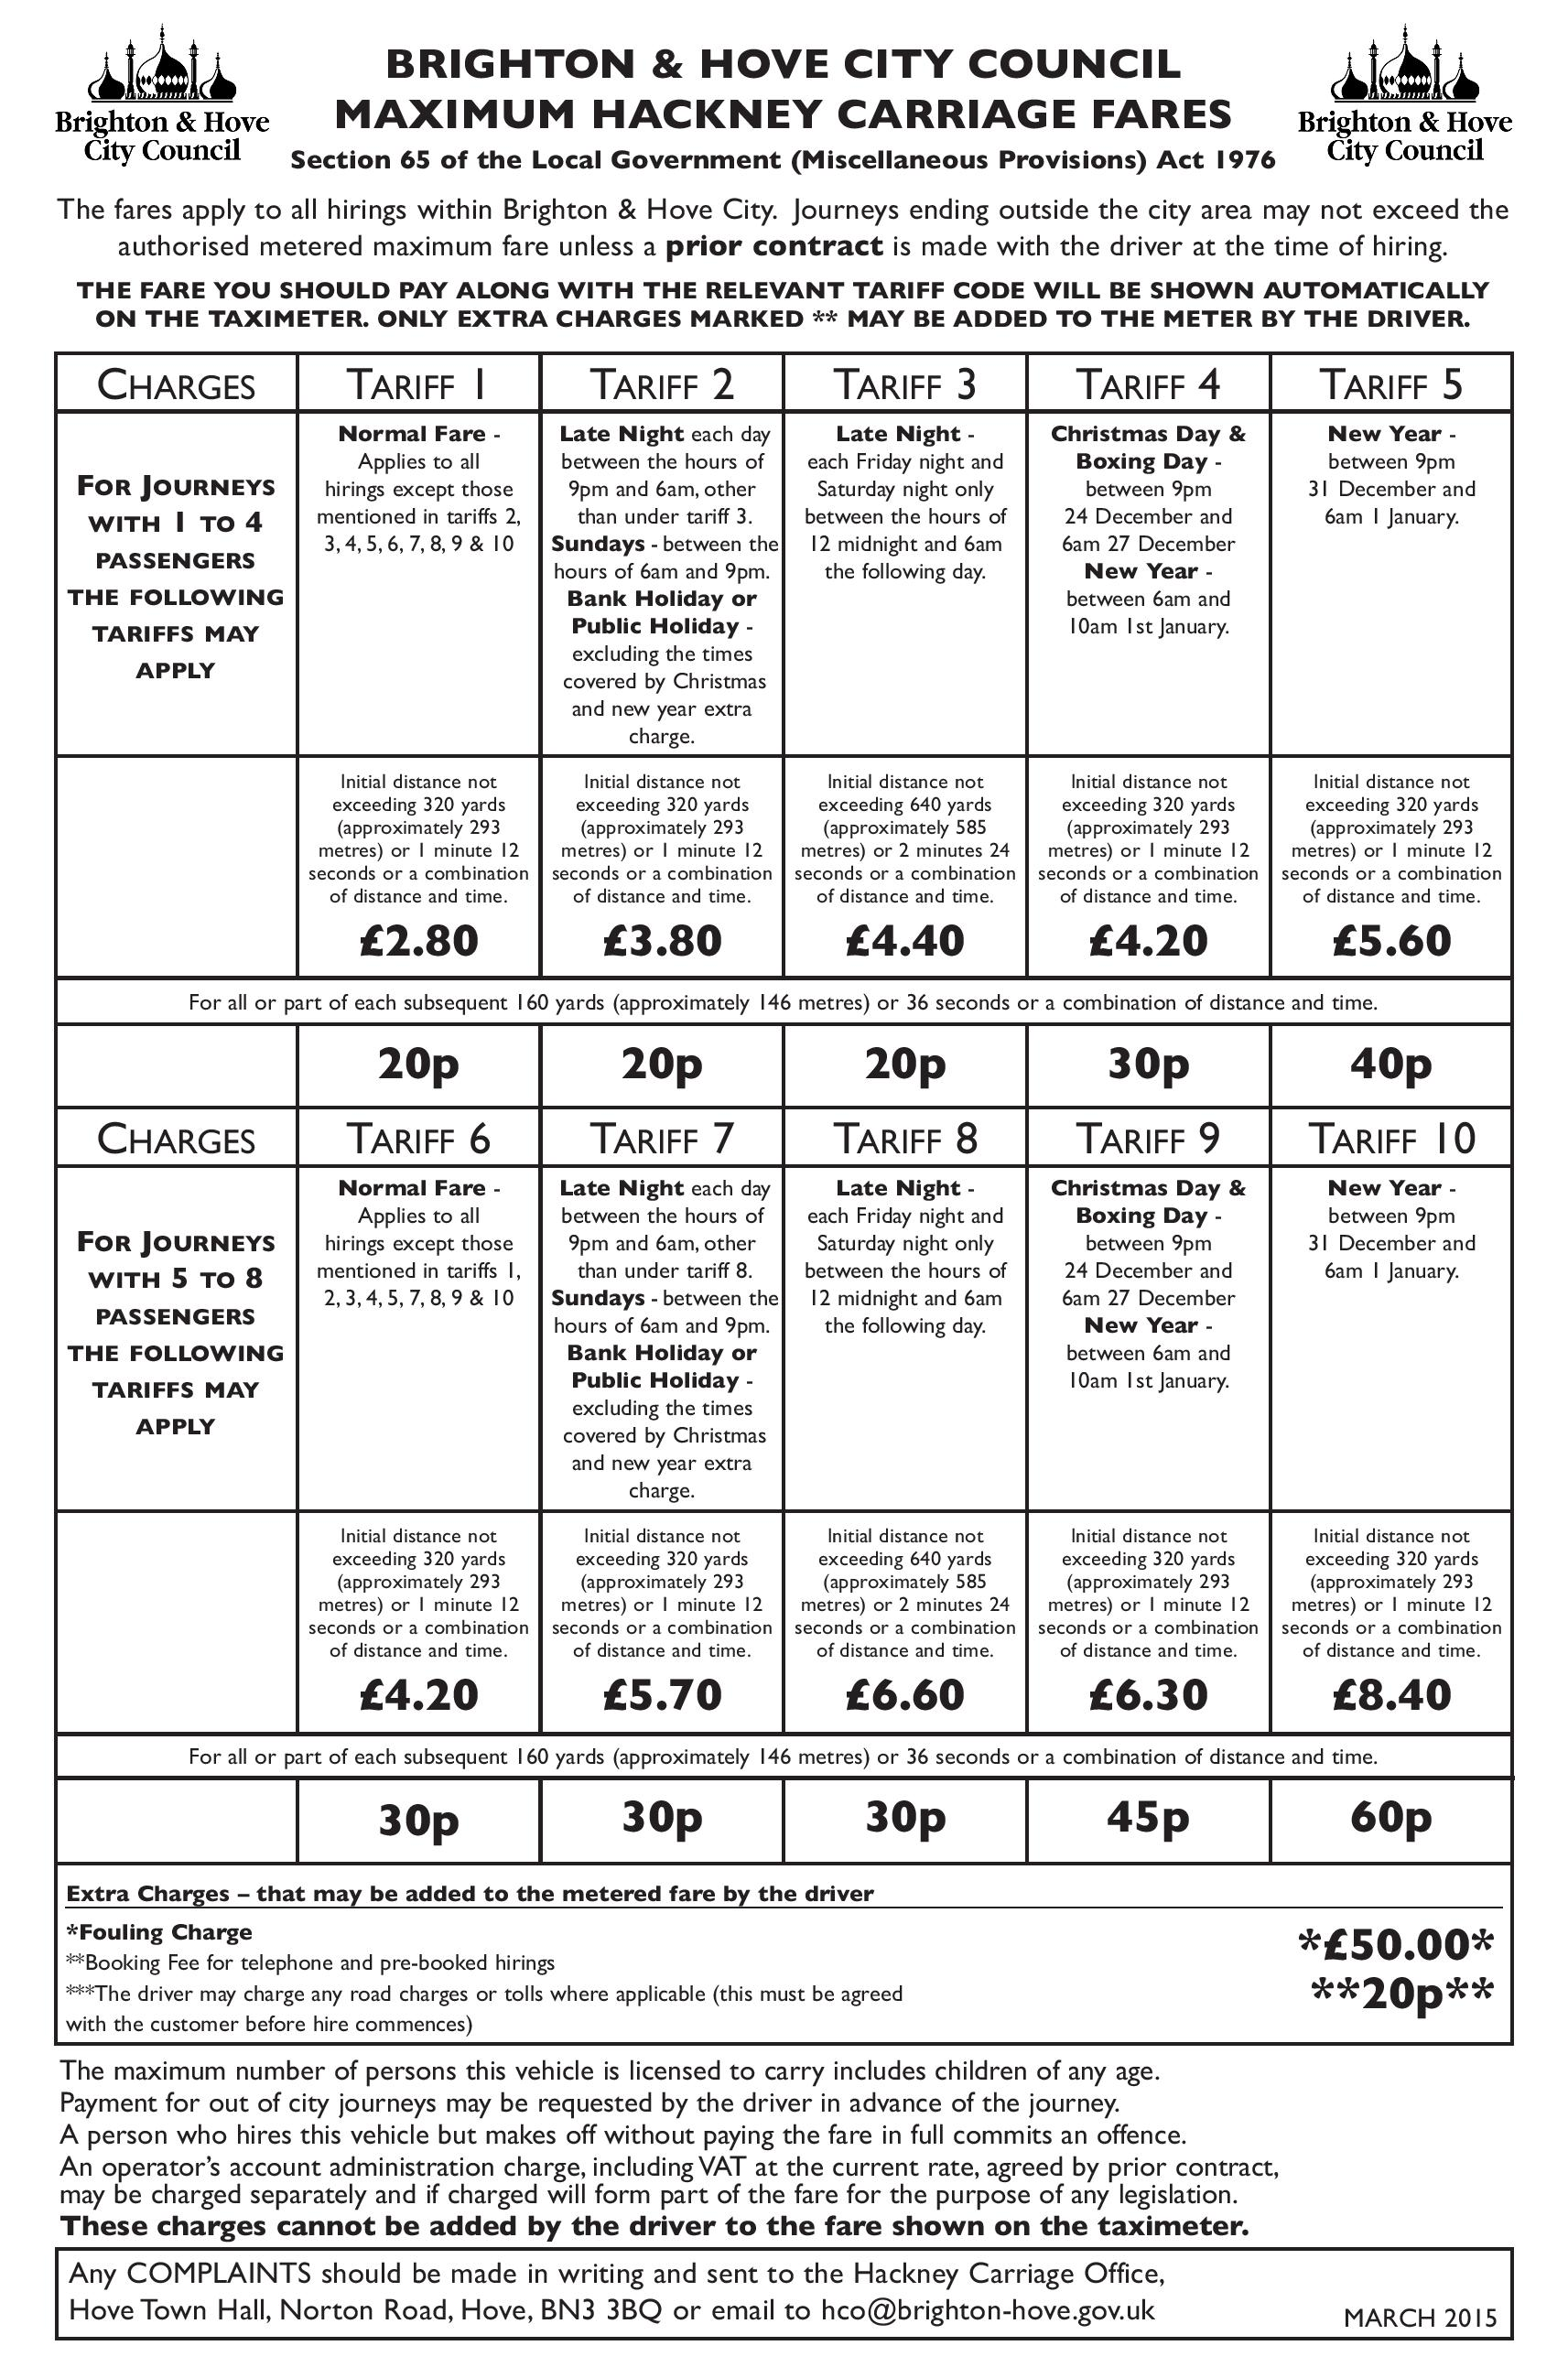 BRIGHTON TAXI TARIFF CARD